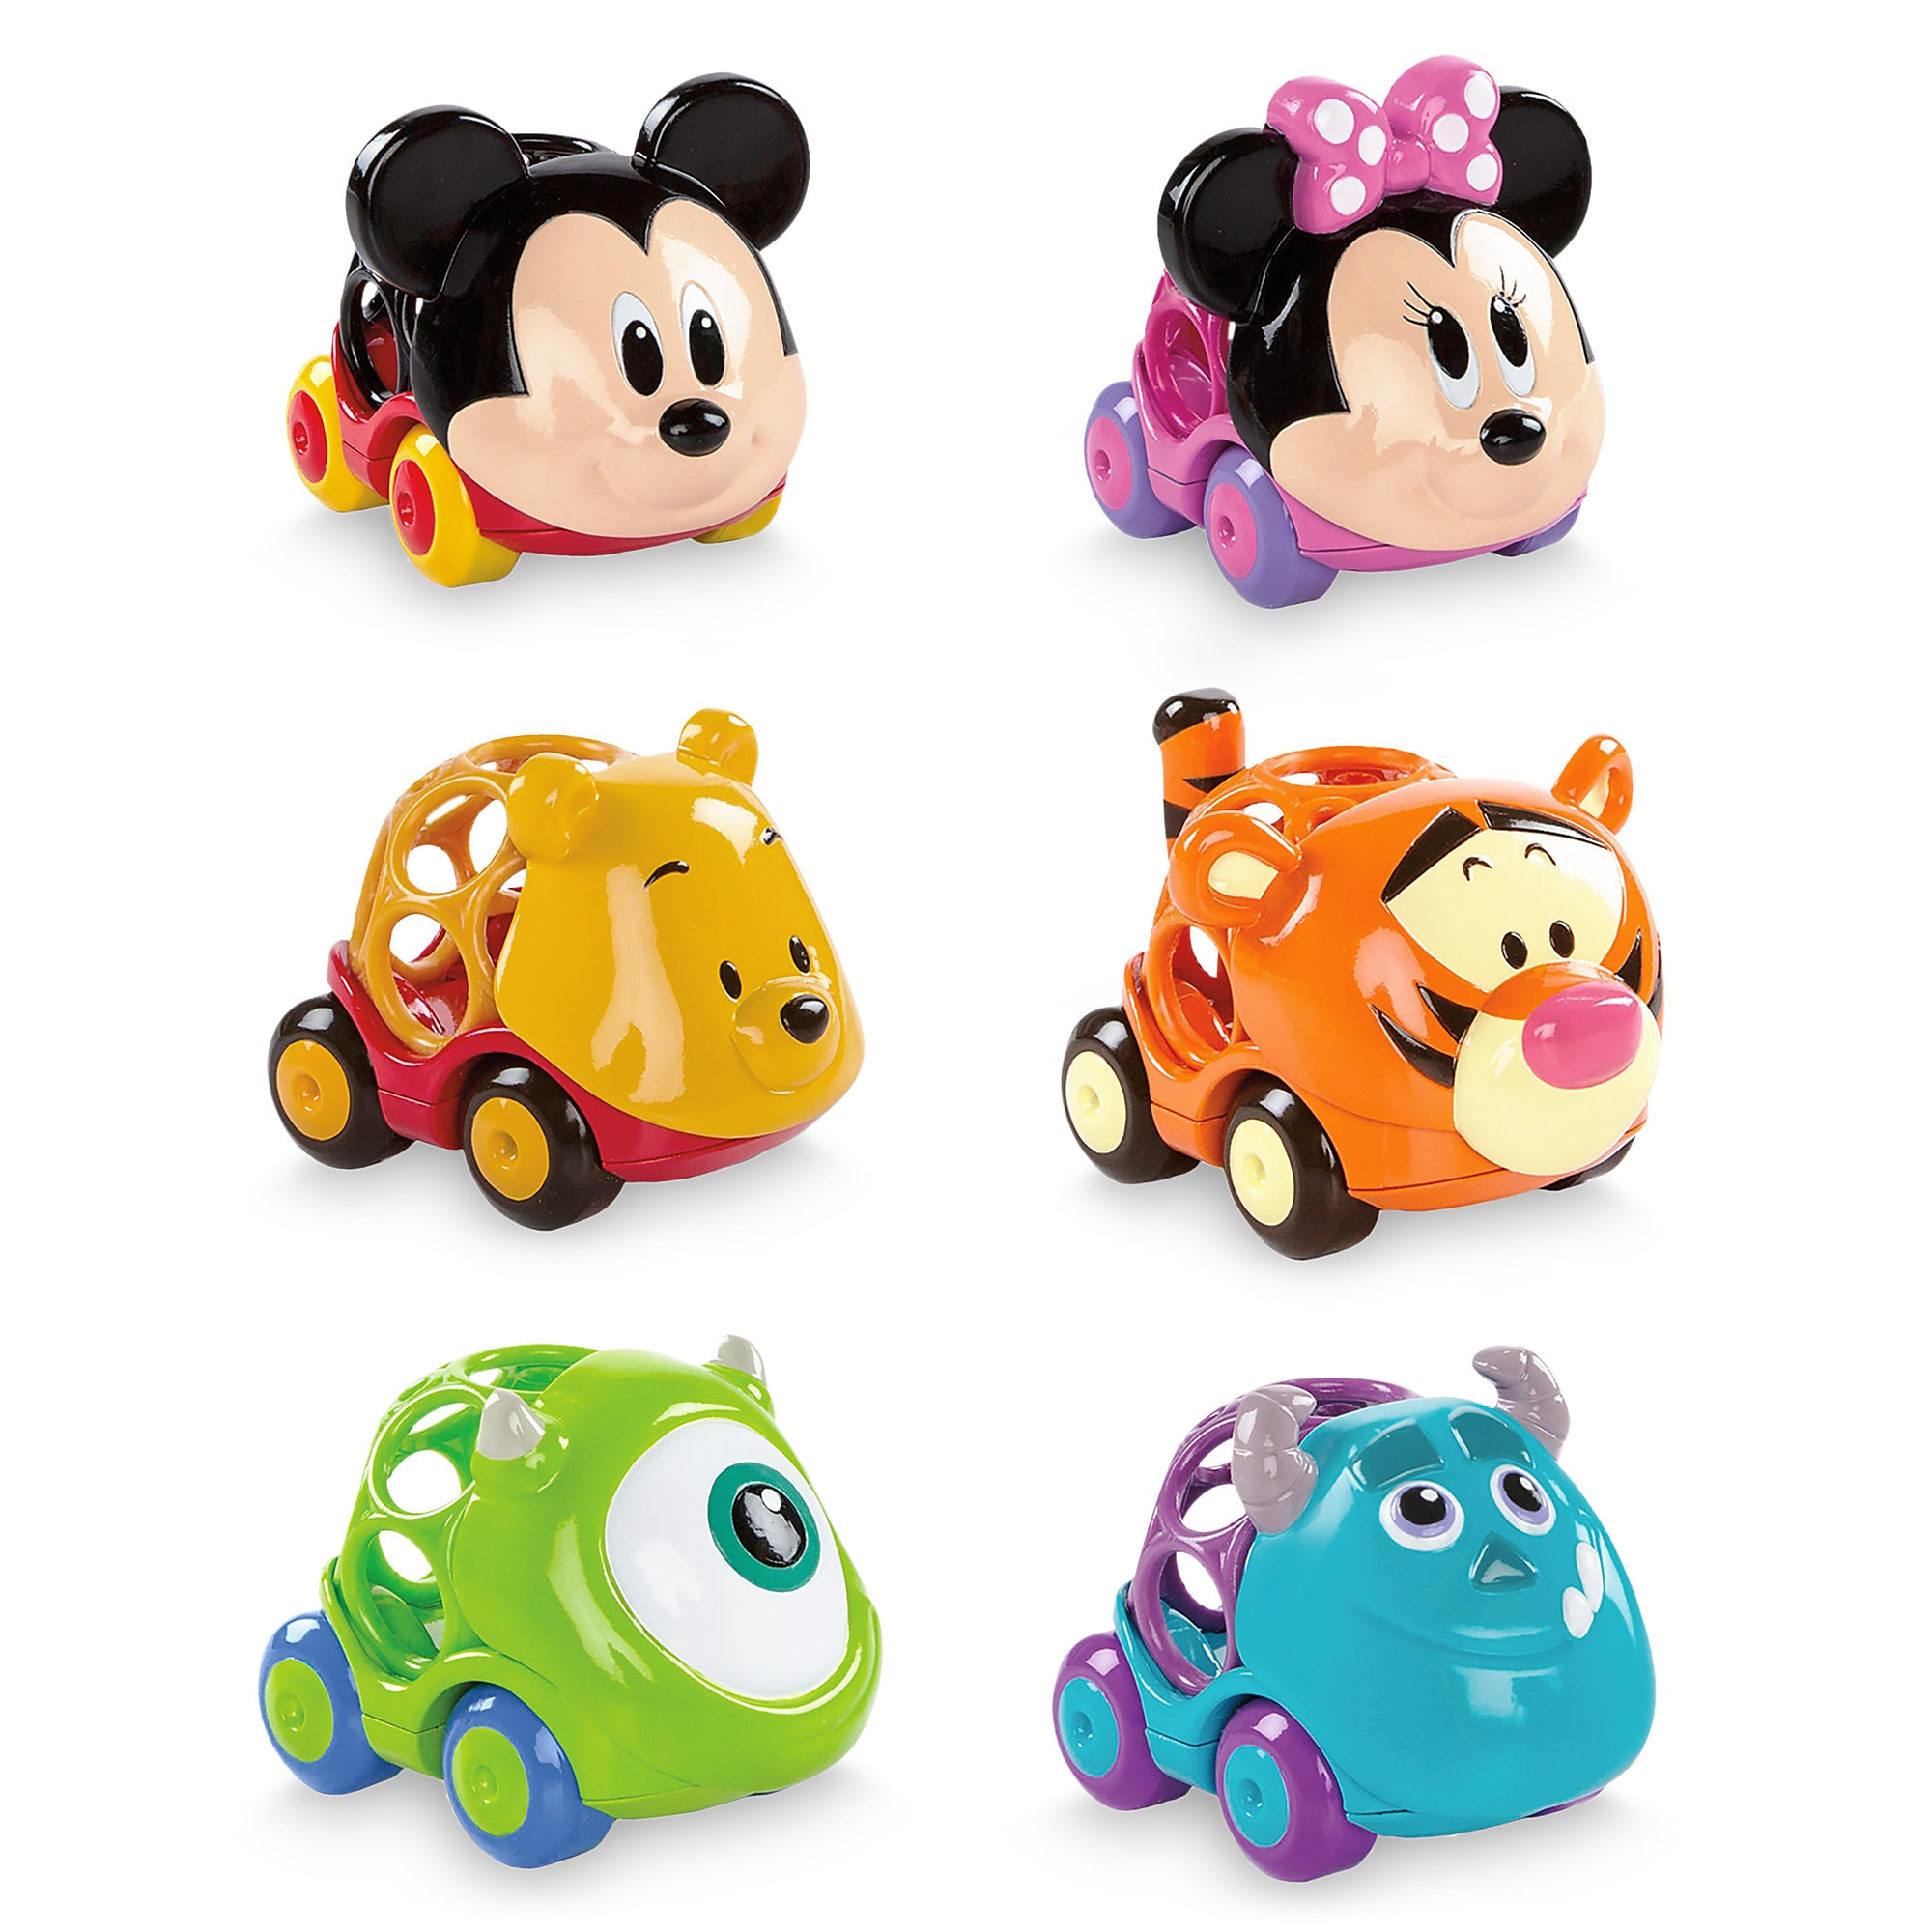 Mickey Mouse and Friends Go Grippers Car Set for Baby by Bright Starts - 6 pc.